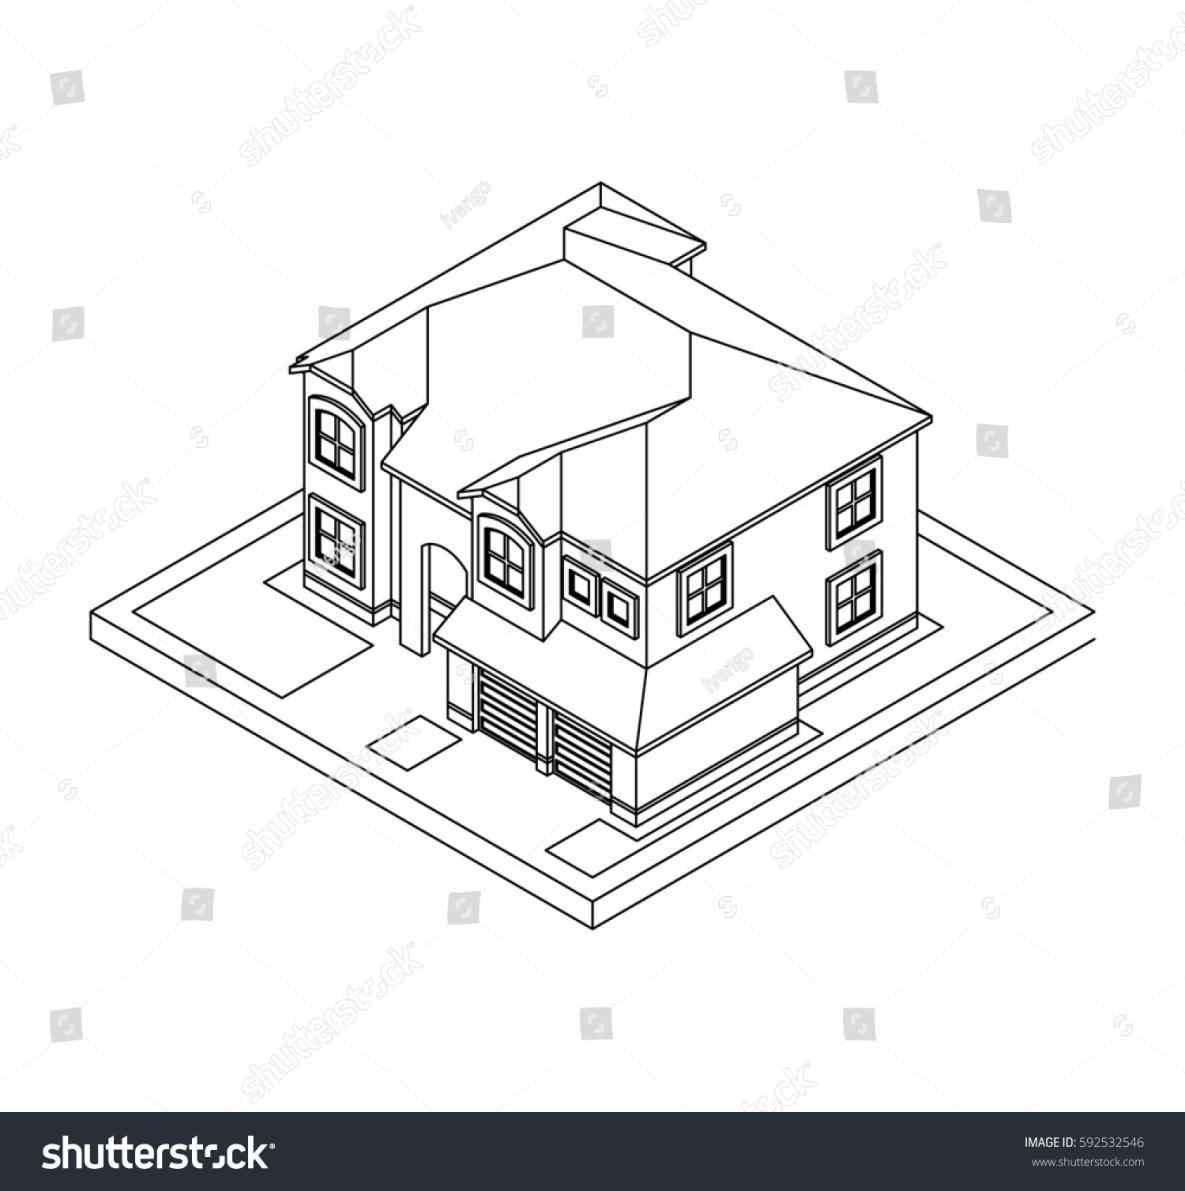 1185x1191 Roof Vector Modern Flat Roof House Sketch Architecture Drawing